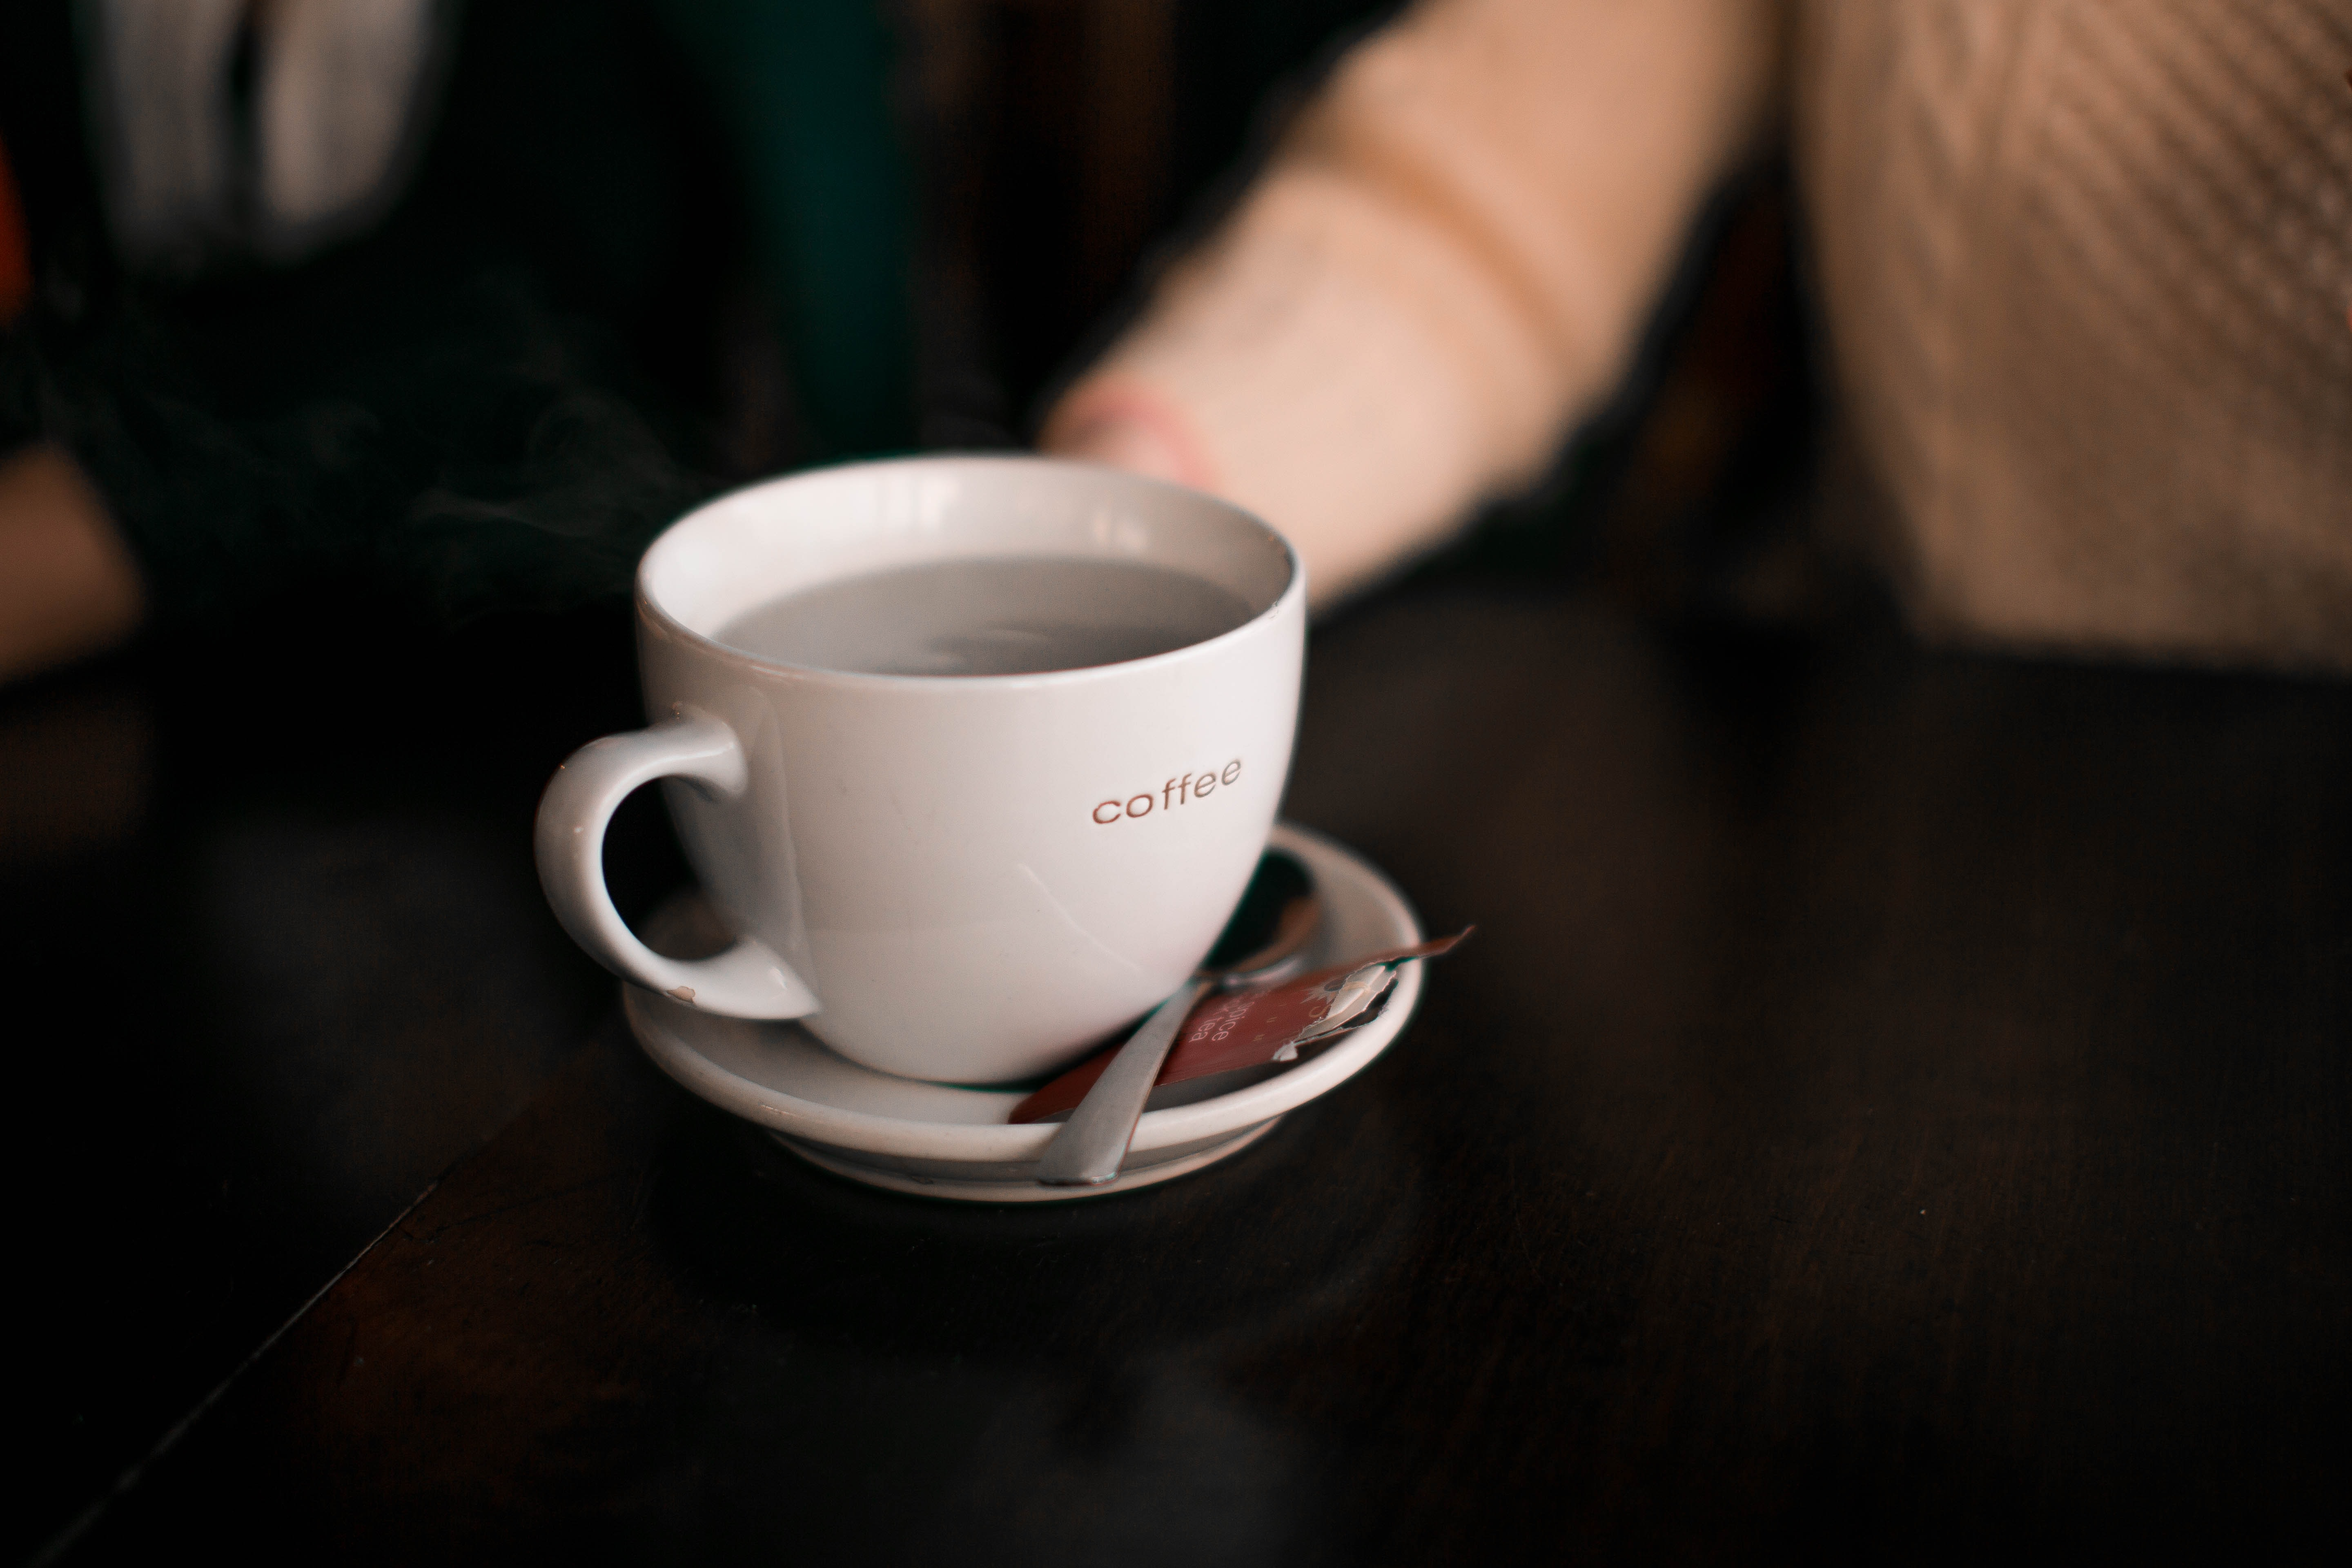 shallow focus photography of coffee cup